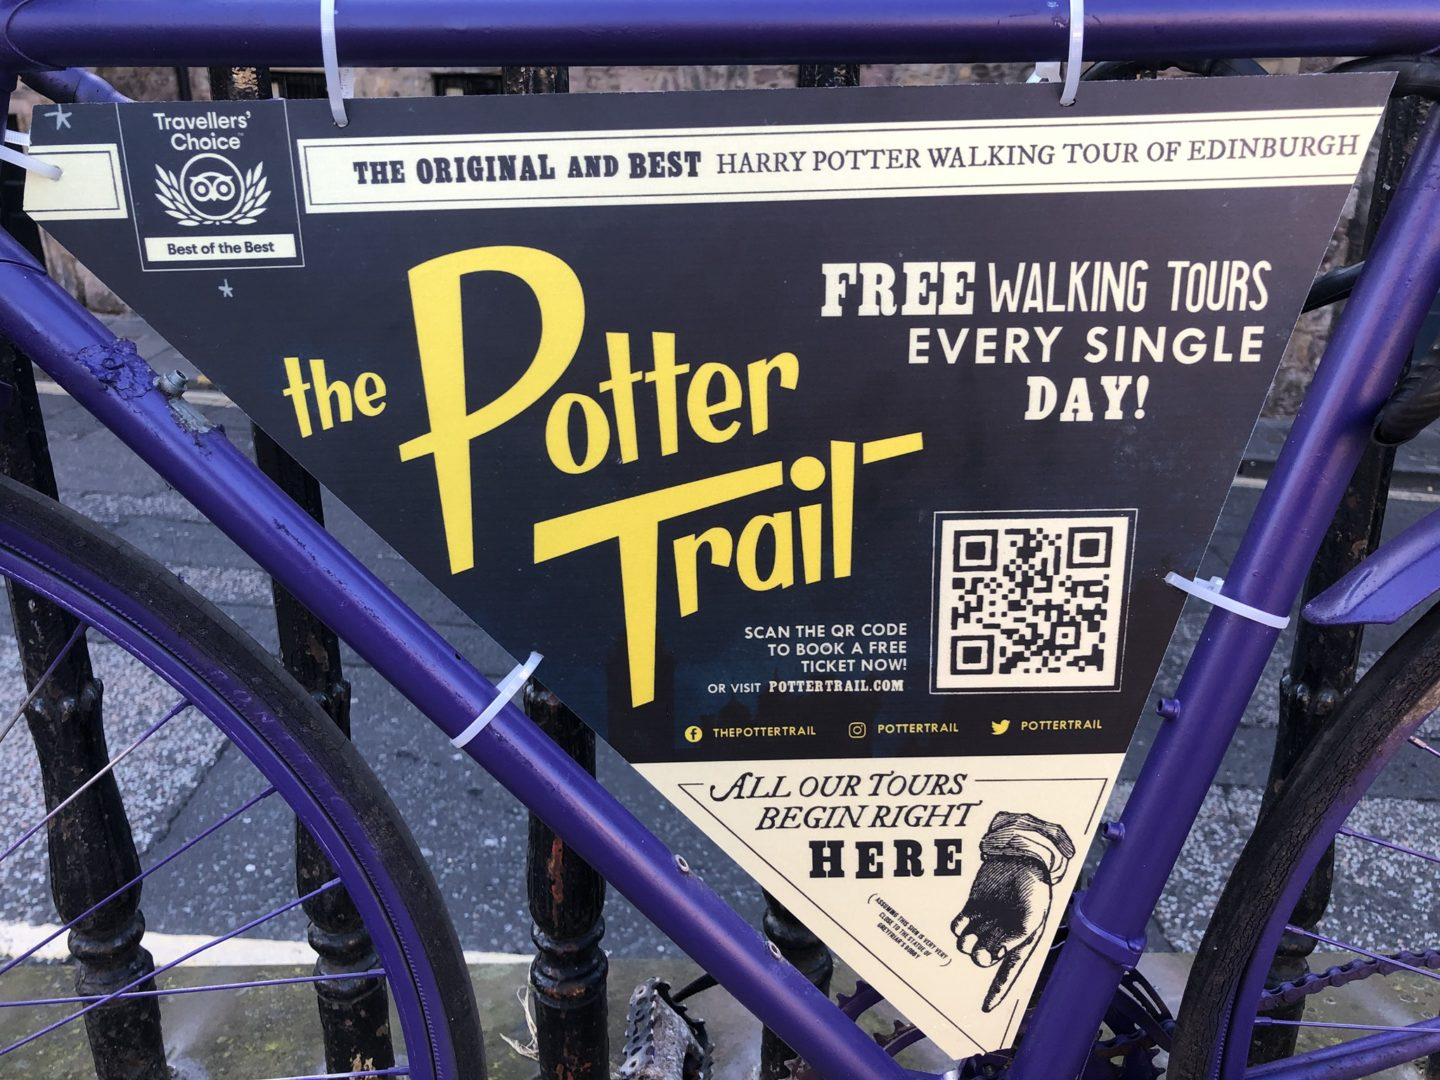 Things To Do in Edinburgh with Kids - The Potter Trail